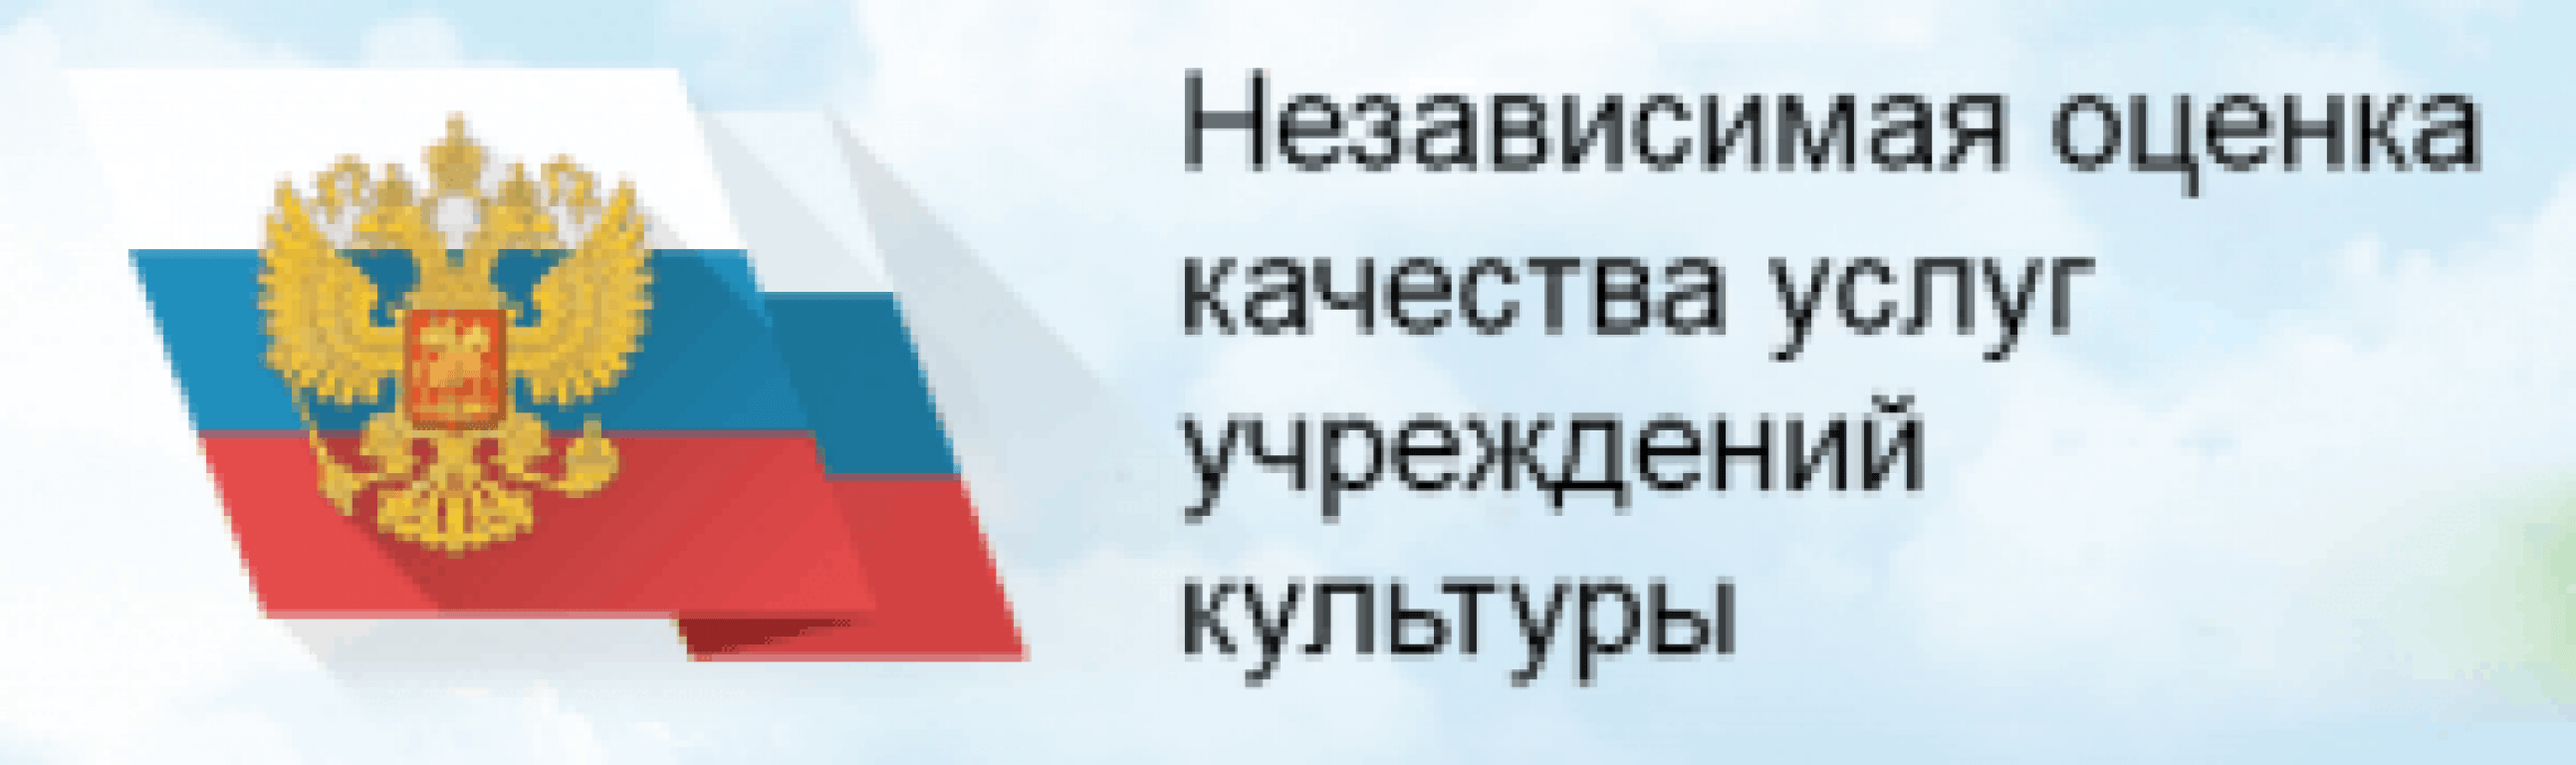 https://bus.gov.ru/info-card/359828